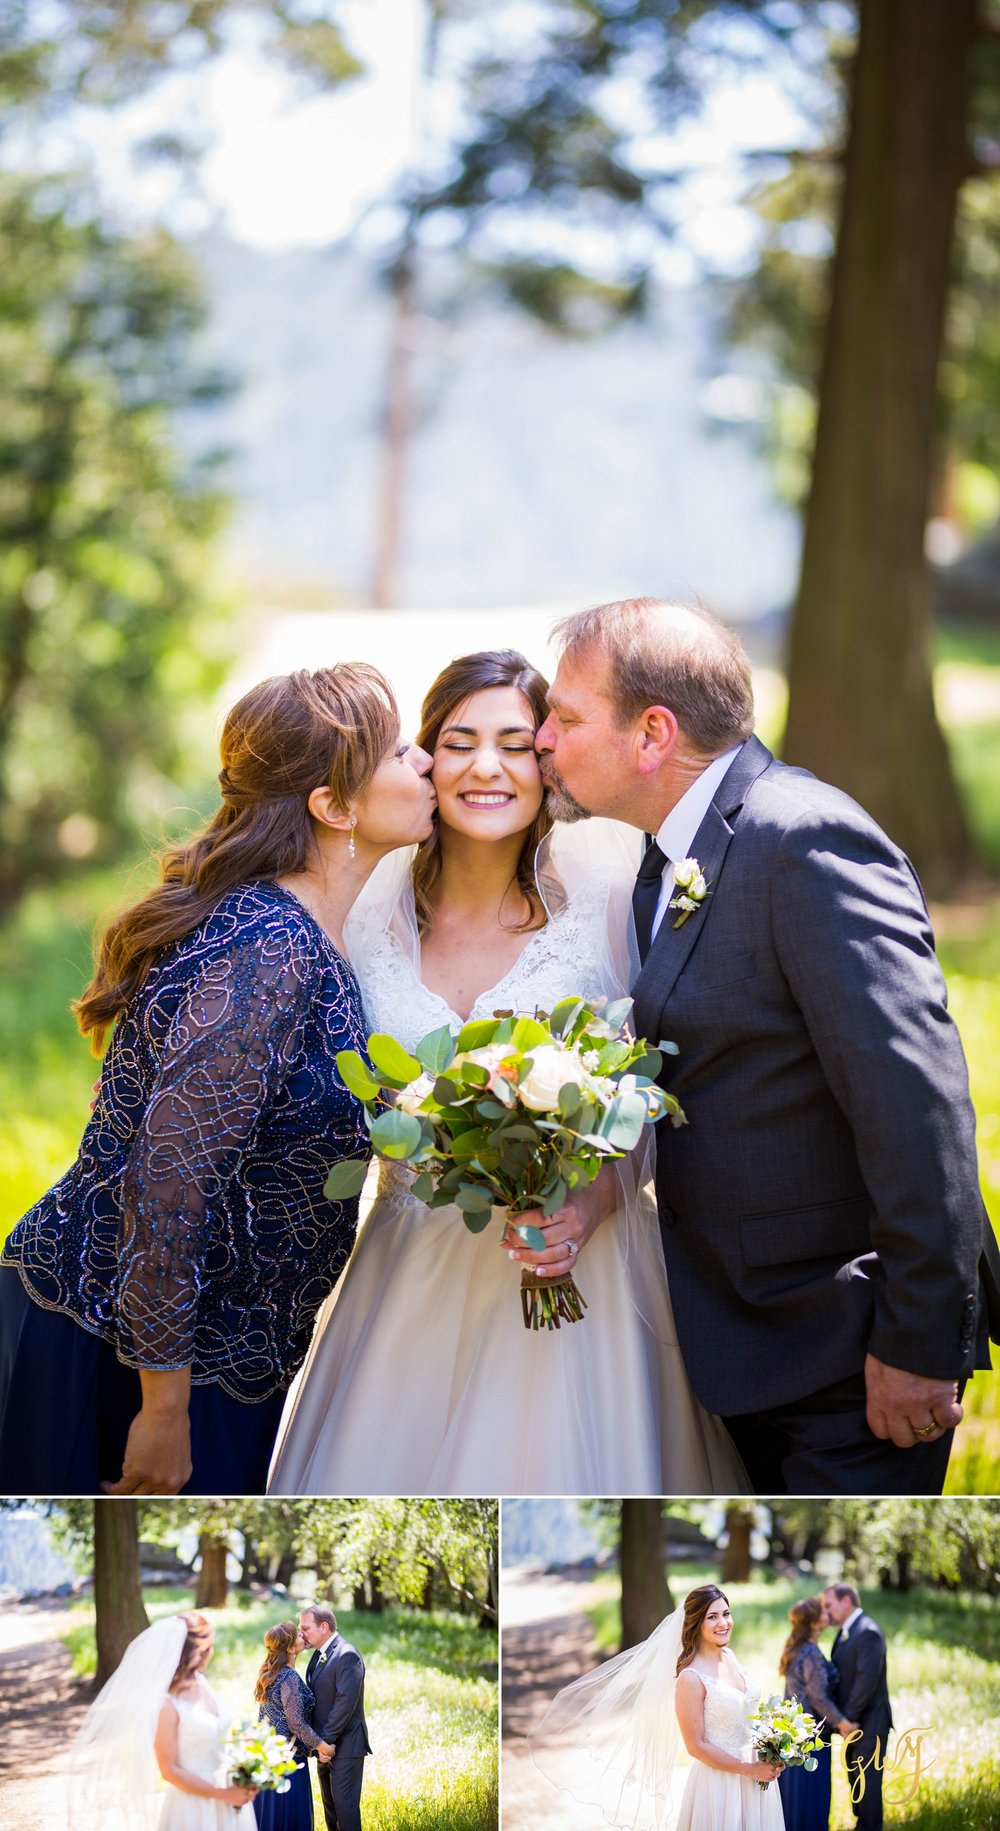 Allison + Jared Southern California Mountain Thousand Pines Christian Camp Wedding by Glass Woods Media 10.jpg